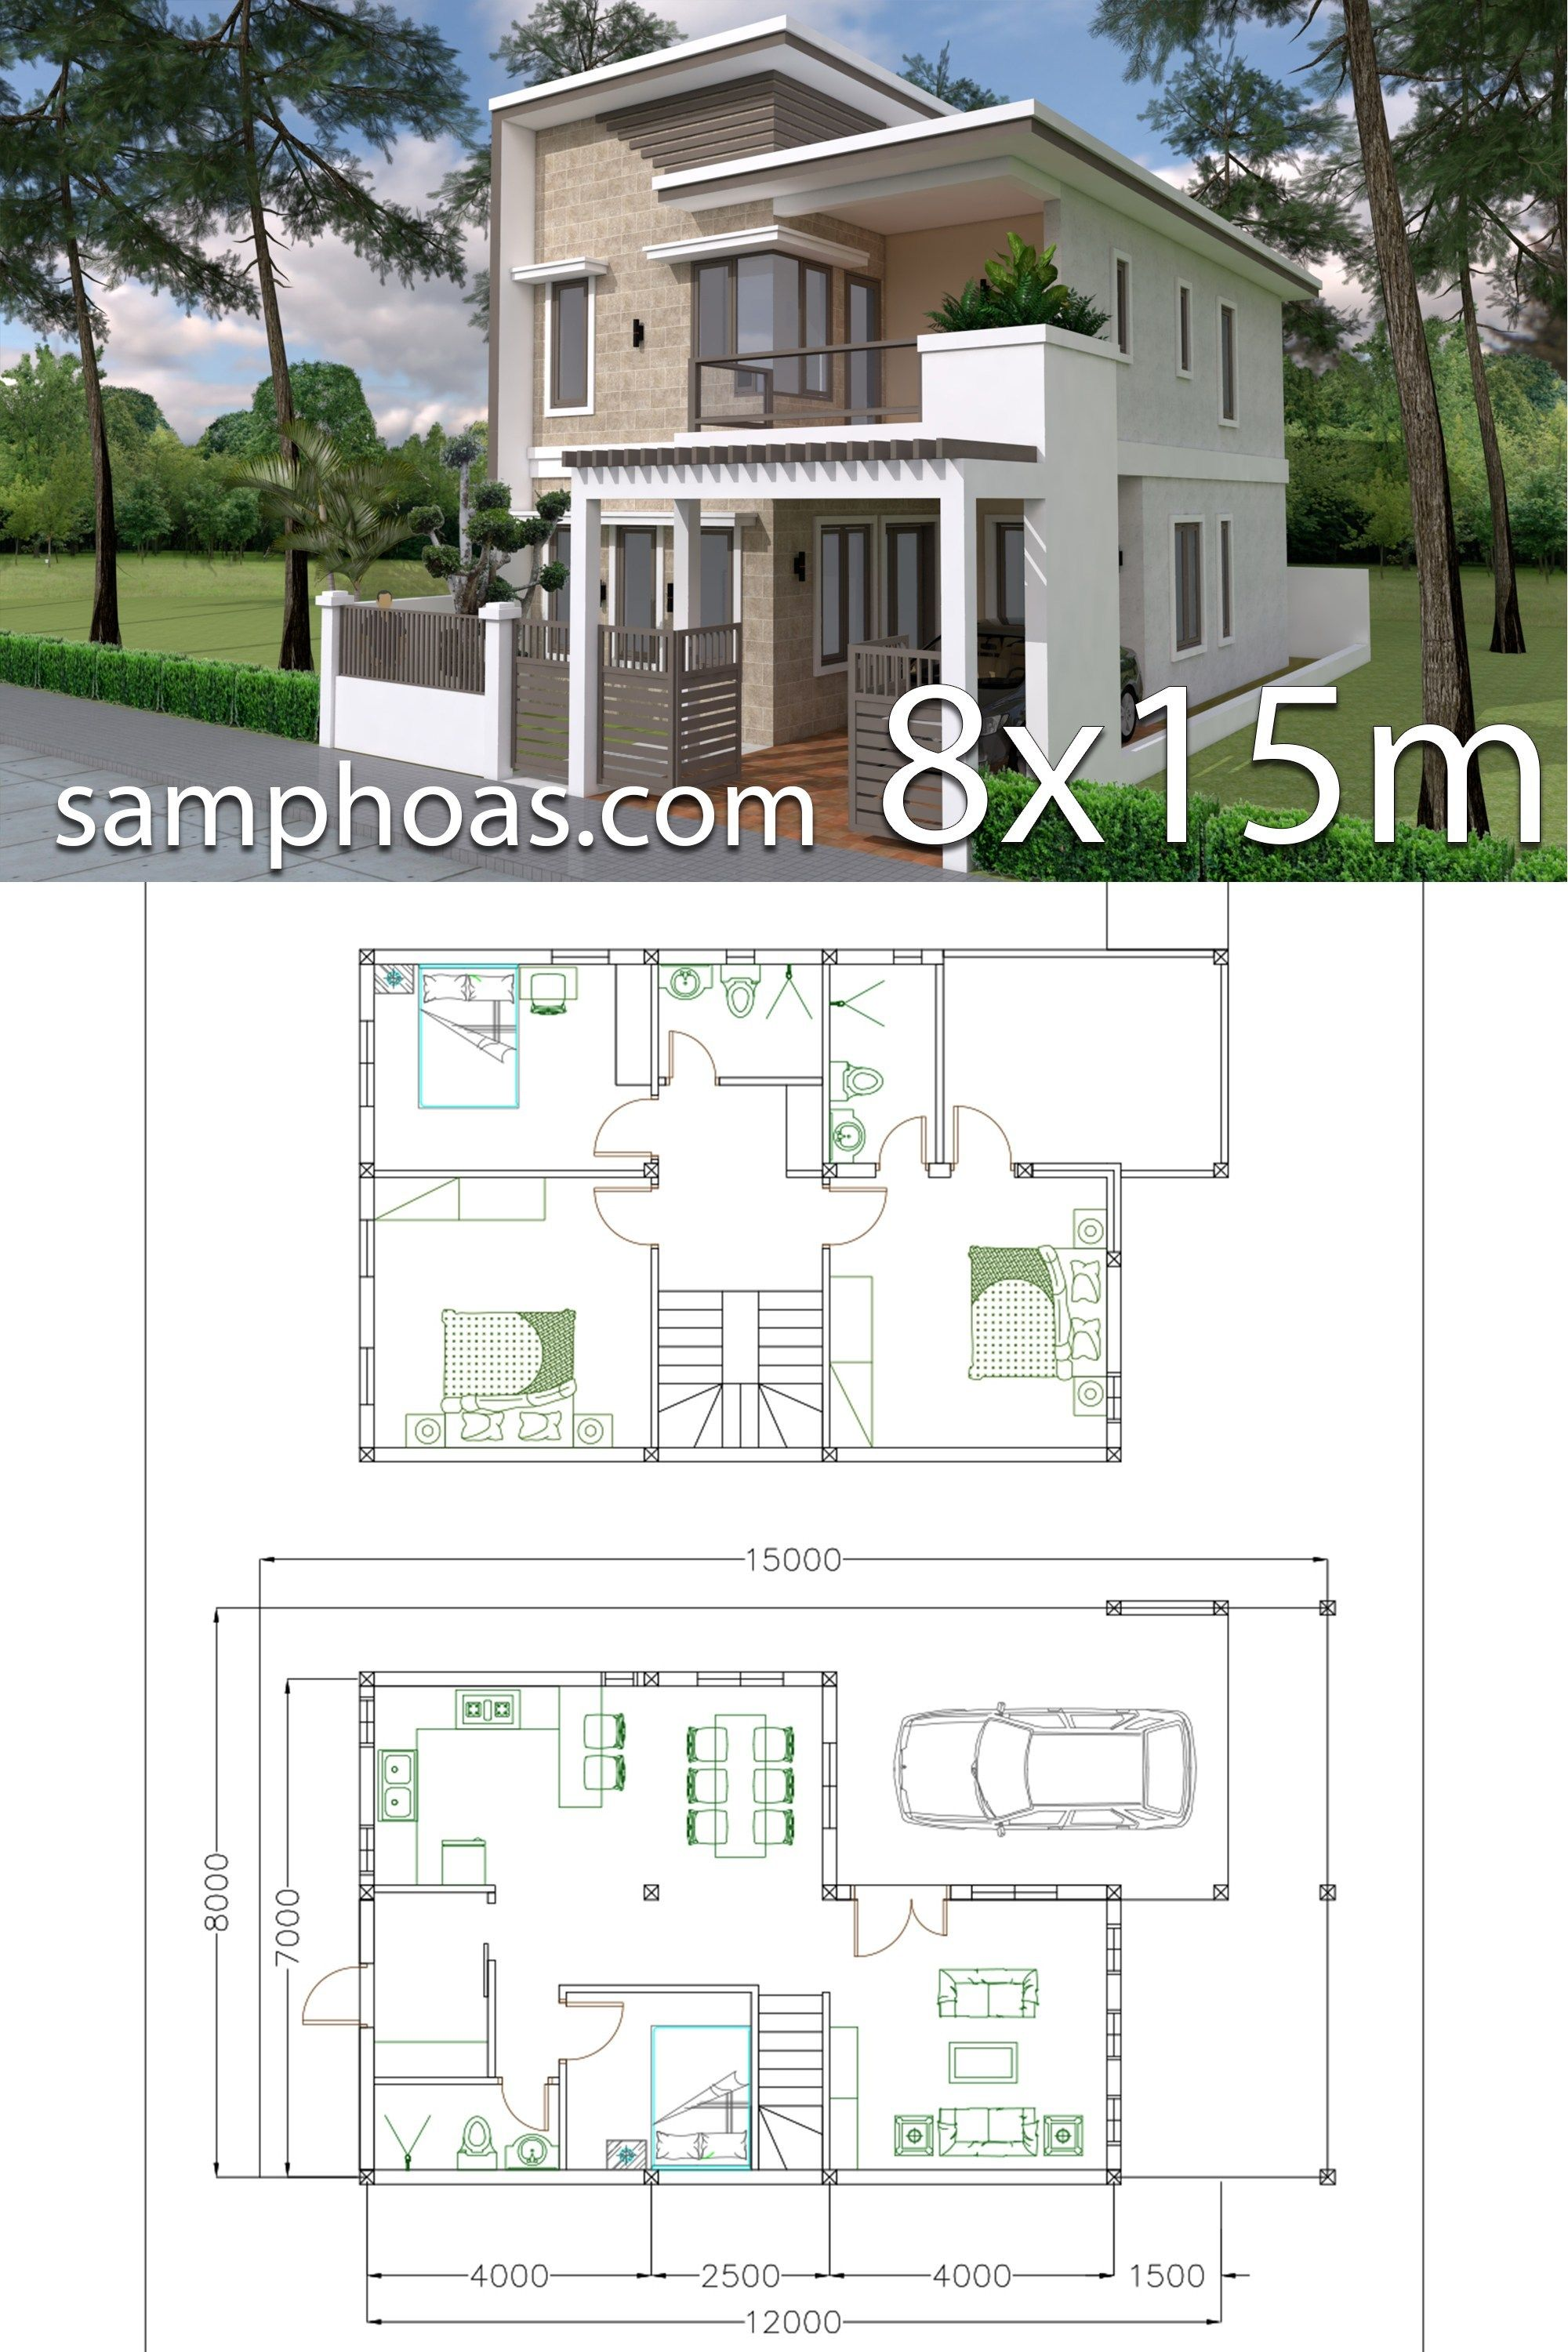 Home design plan 7x12m with 4 bedrooms plot 8x15 samphoas plan